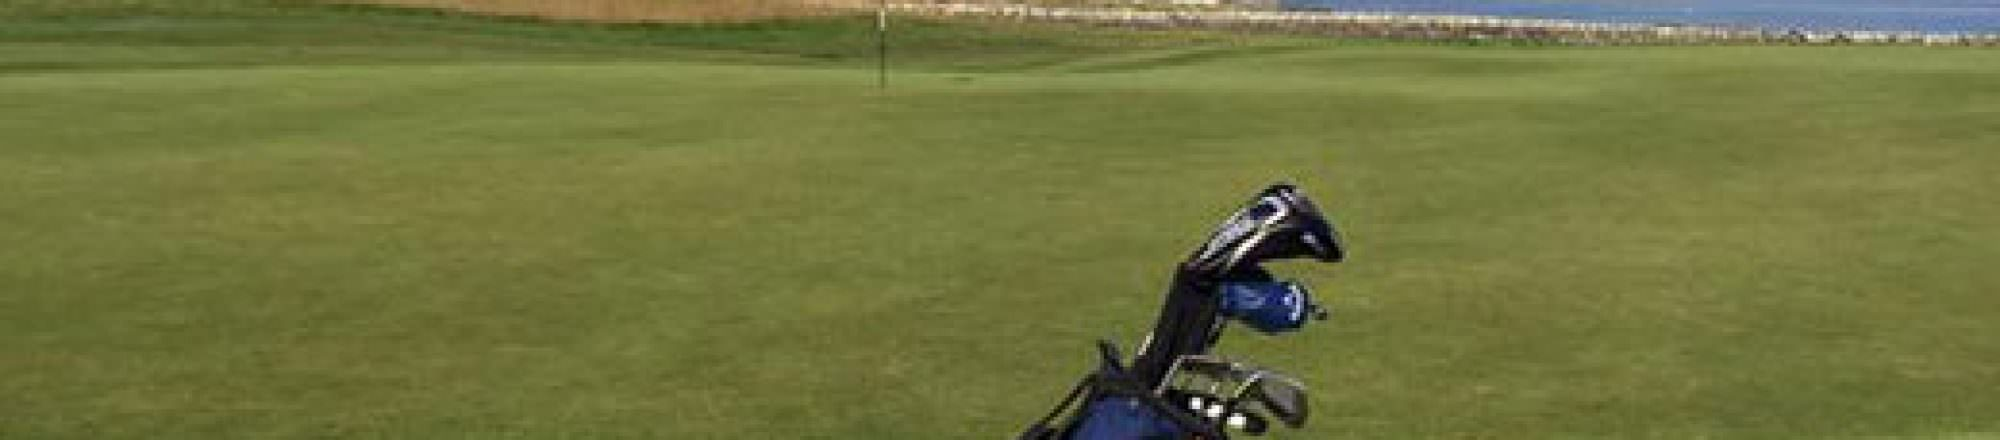 Played by NCG: Fairmont (Torrance Course)